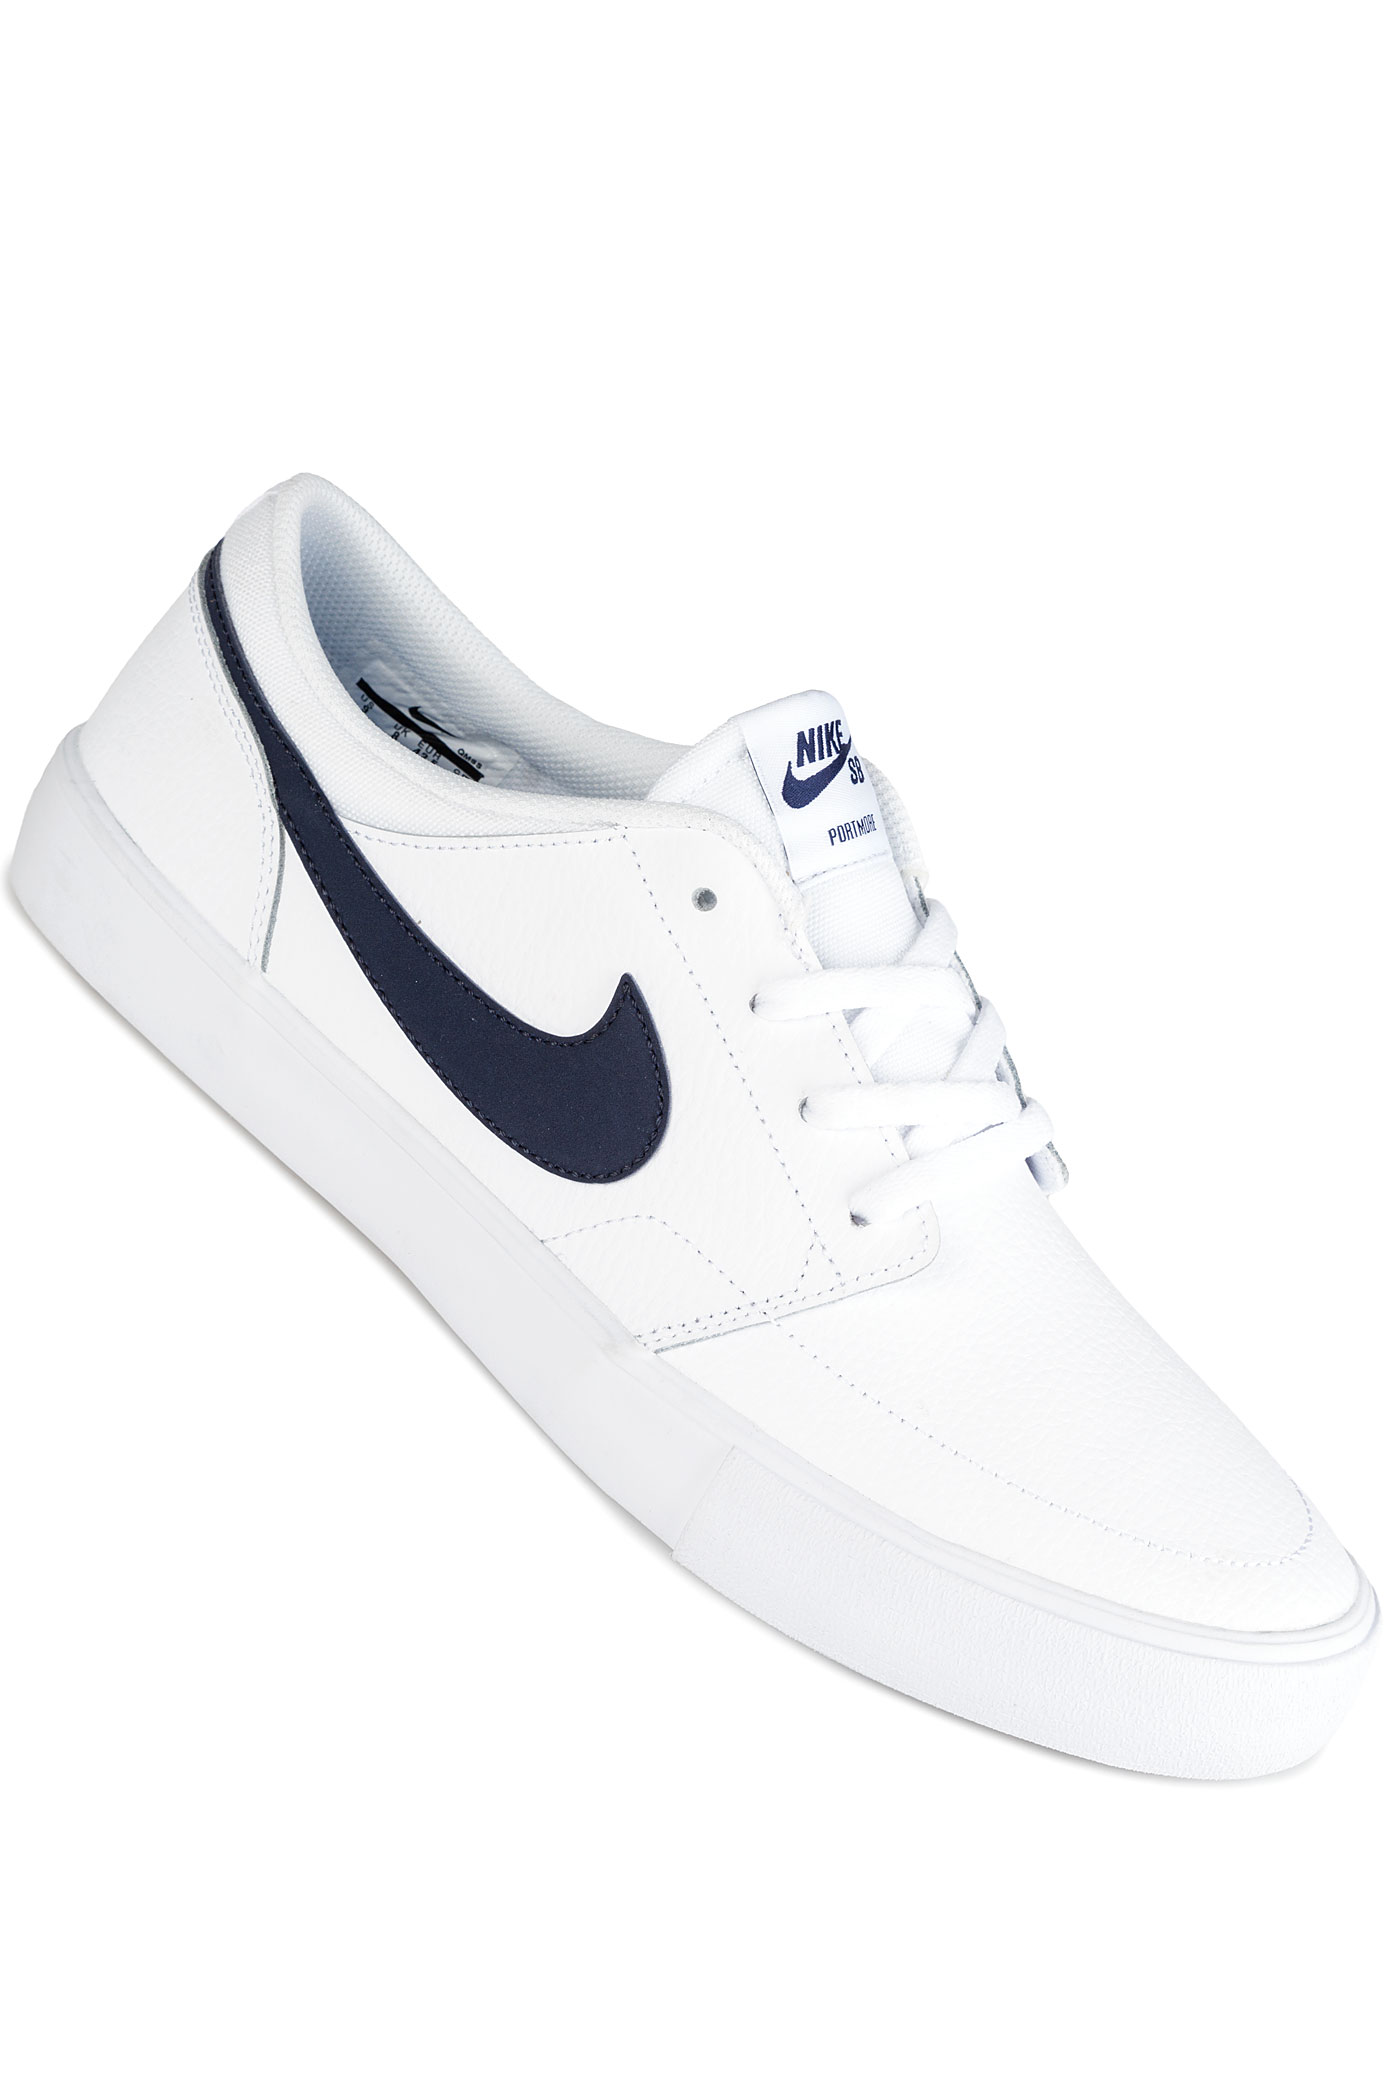 nike sb solarsoft portmore ii premium shoes white obsidian buy at skatedeluxe. Black Bedroom Furniture Sets. Home Design Ideas